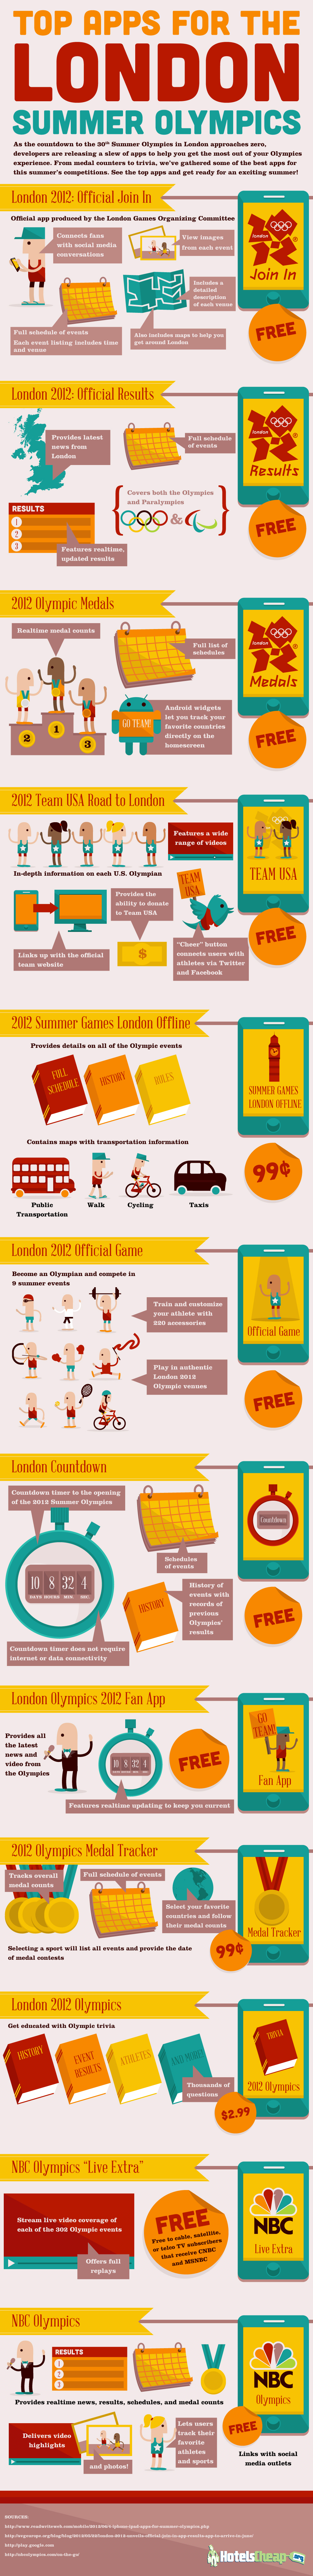 The best dating apps london